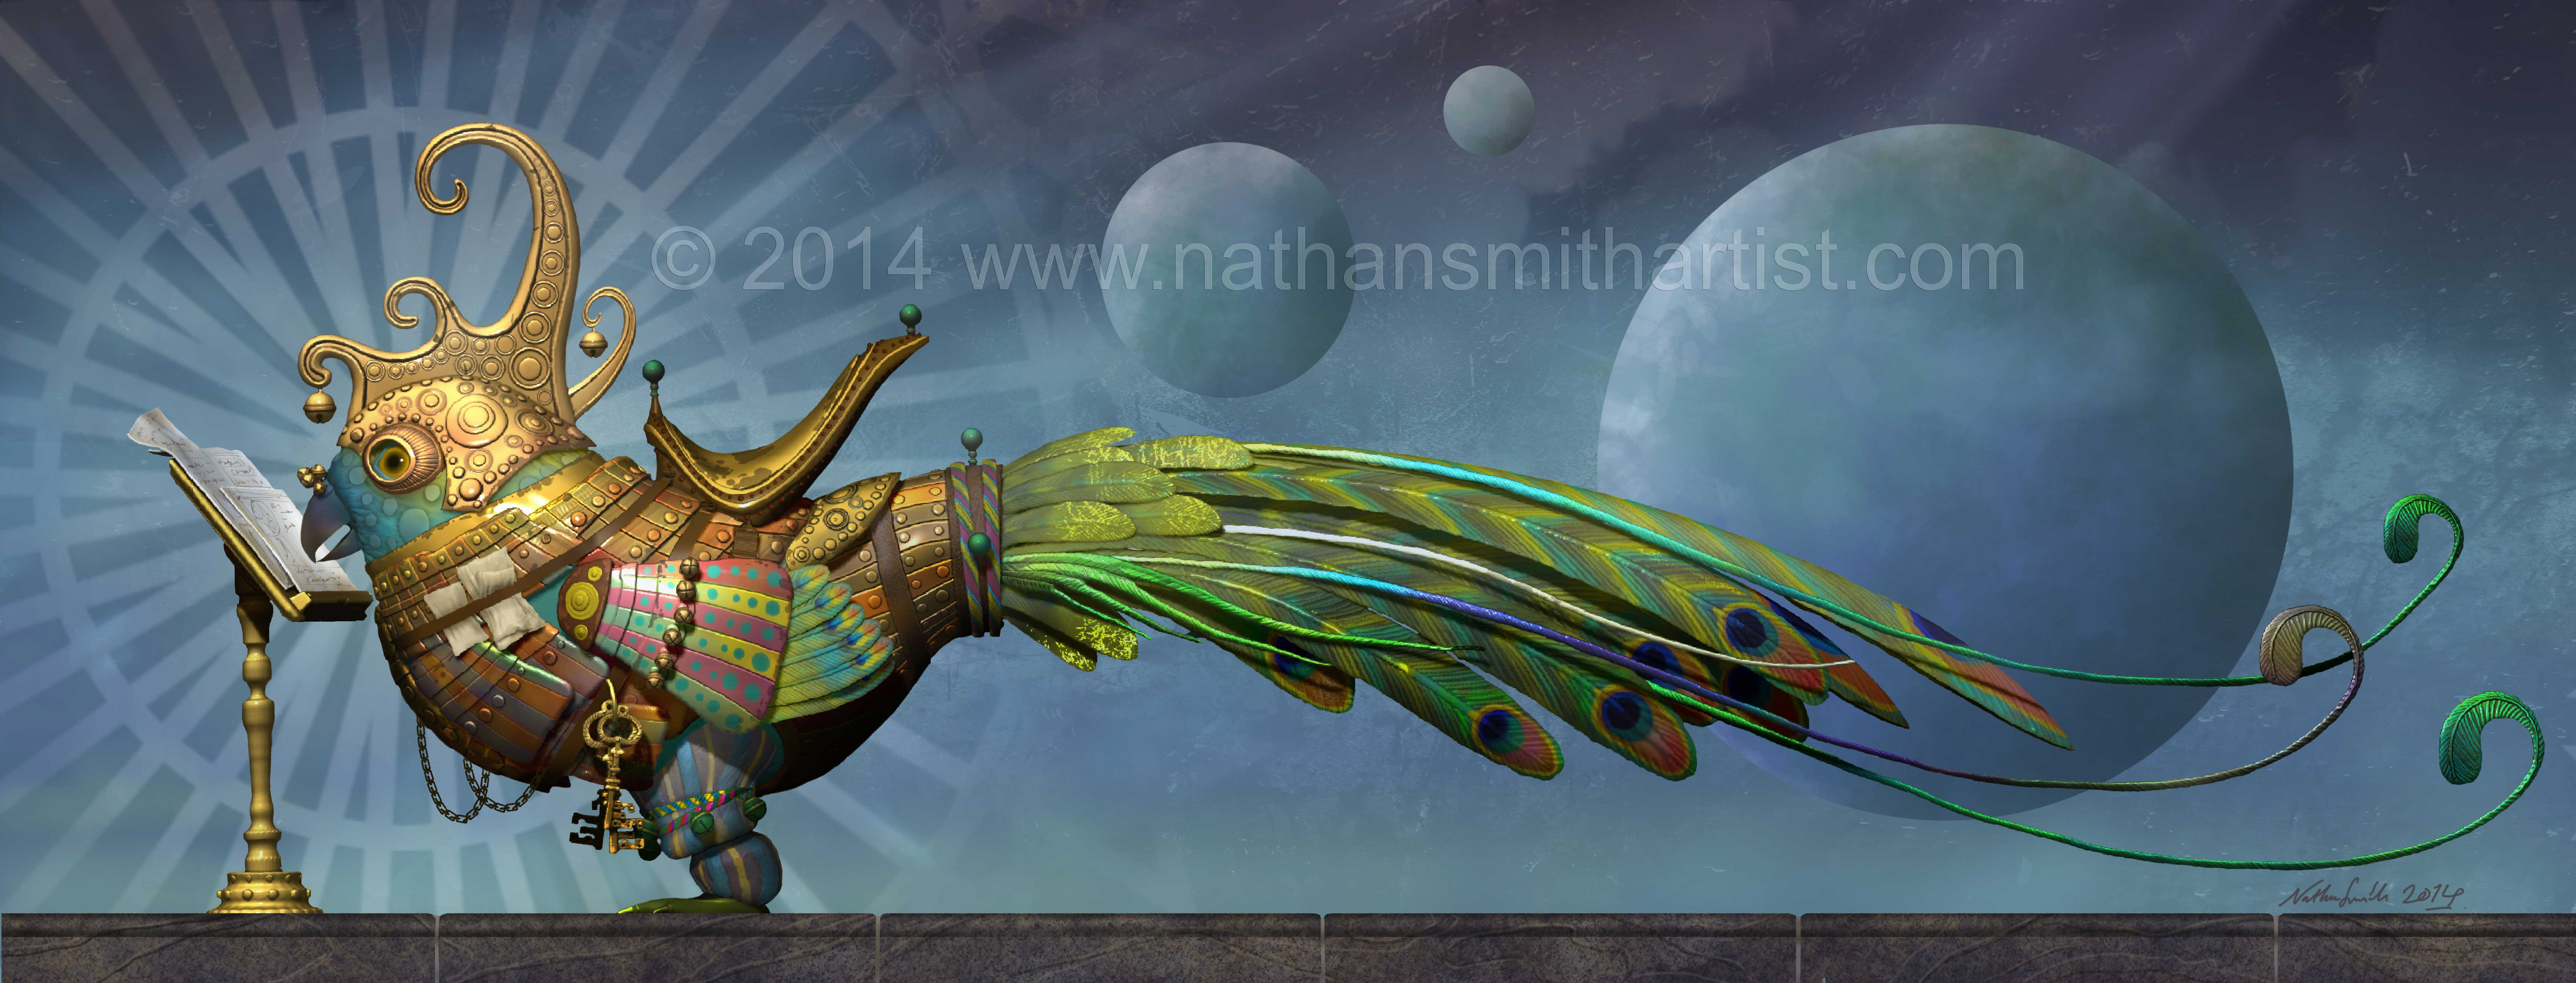 Peacock,Golden,Planets,Nathan Smith